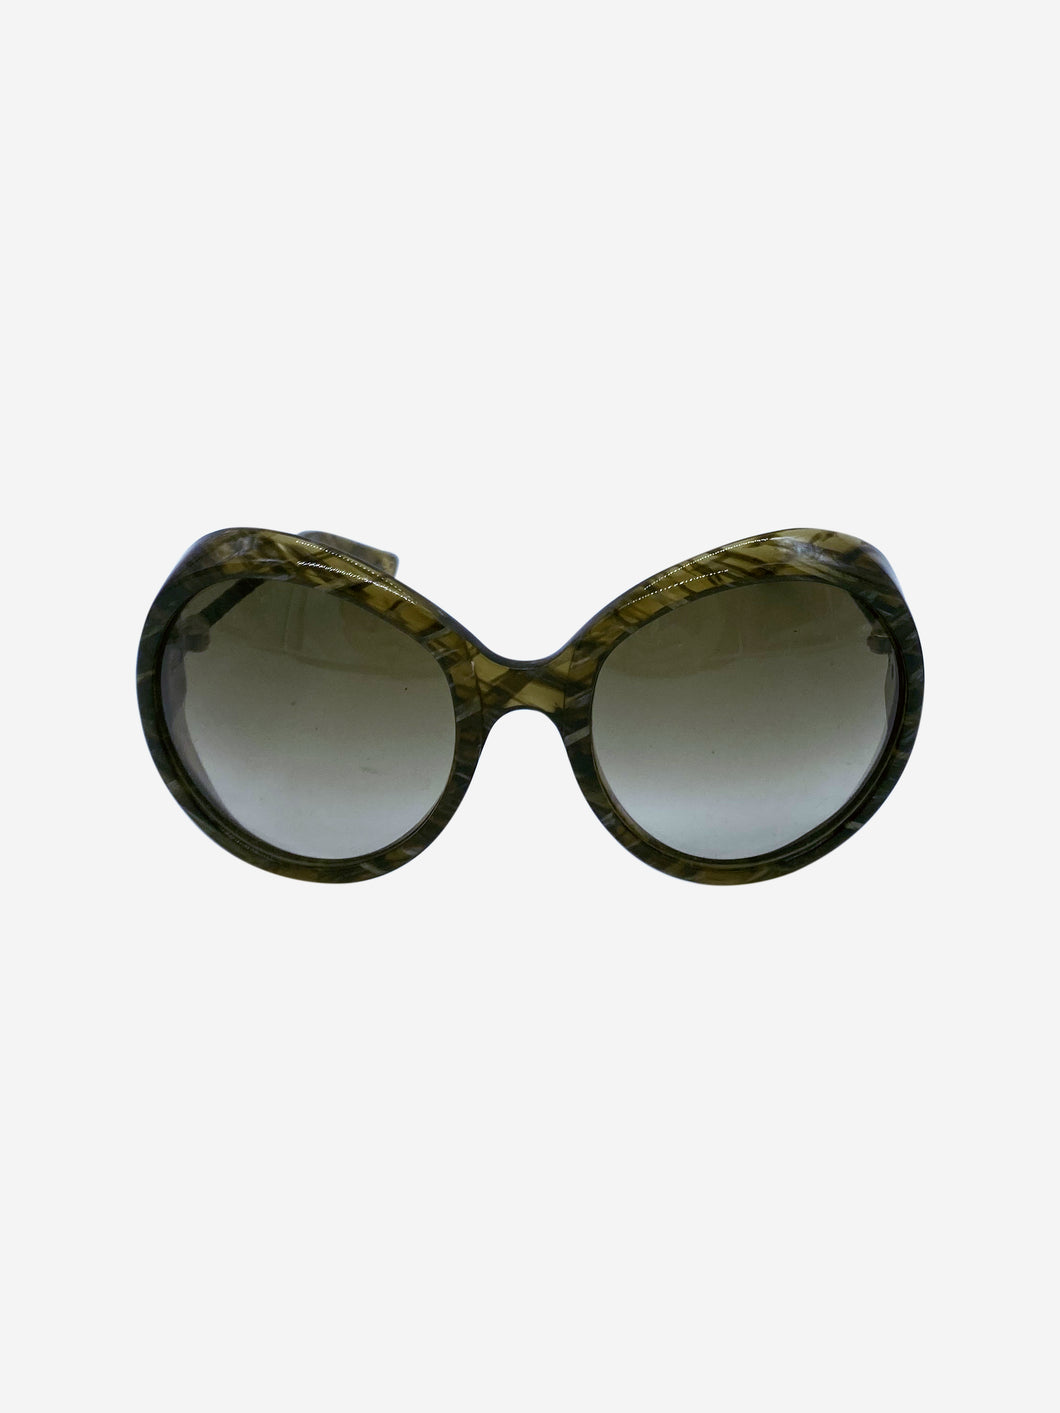 Khaki round sunglasses with woven leather arms